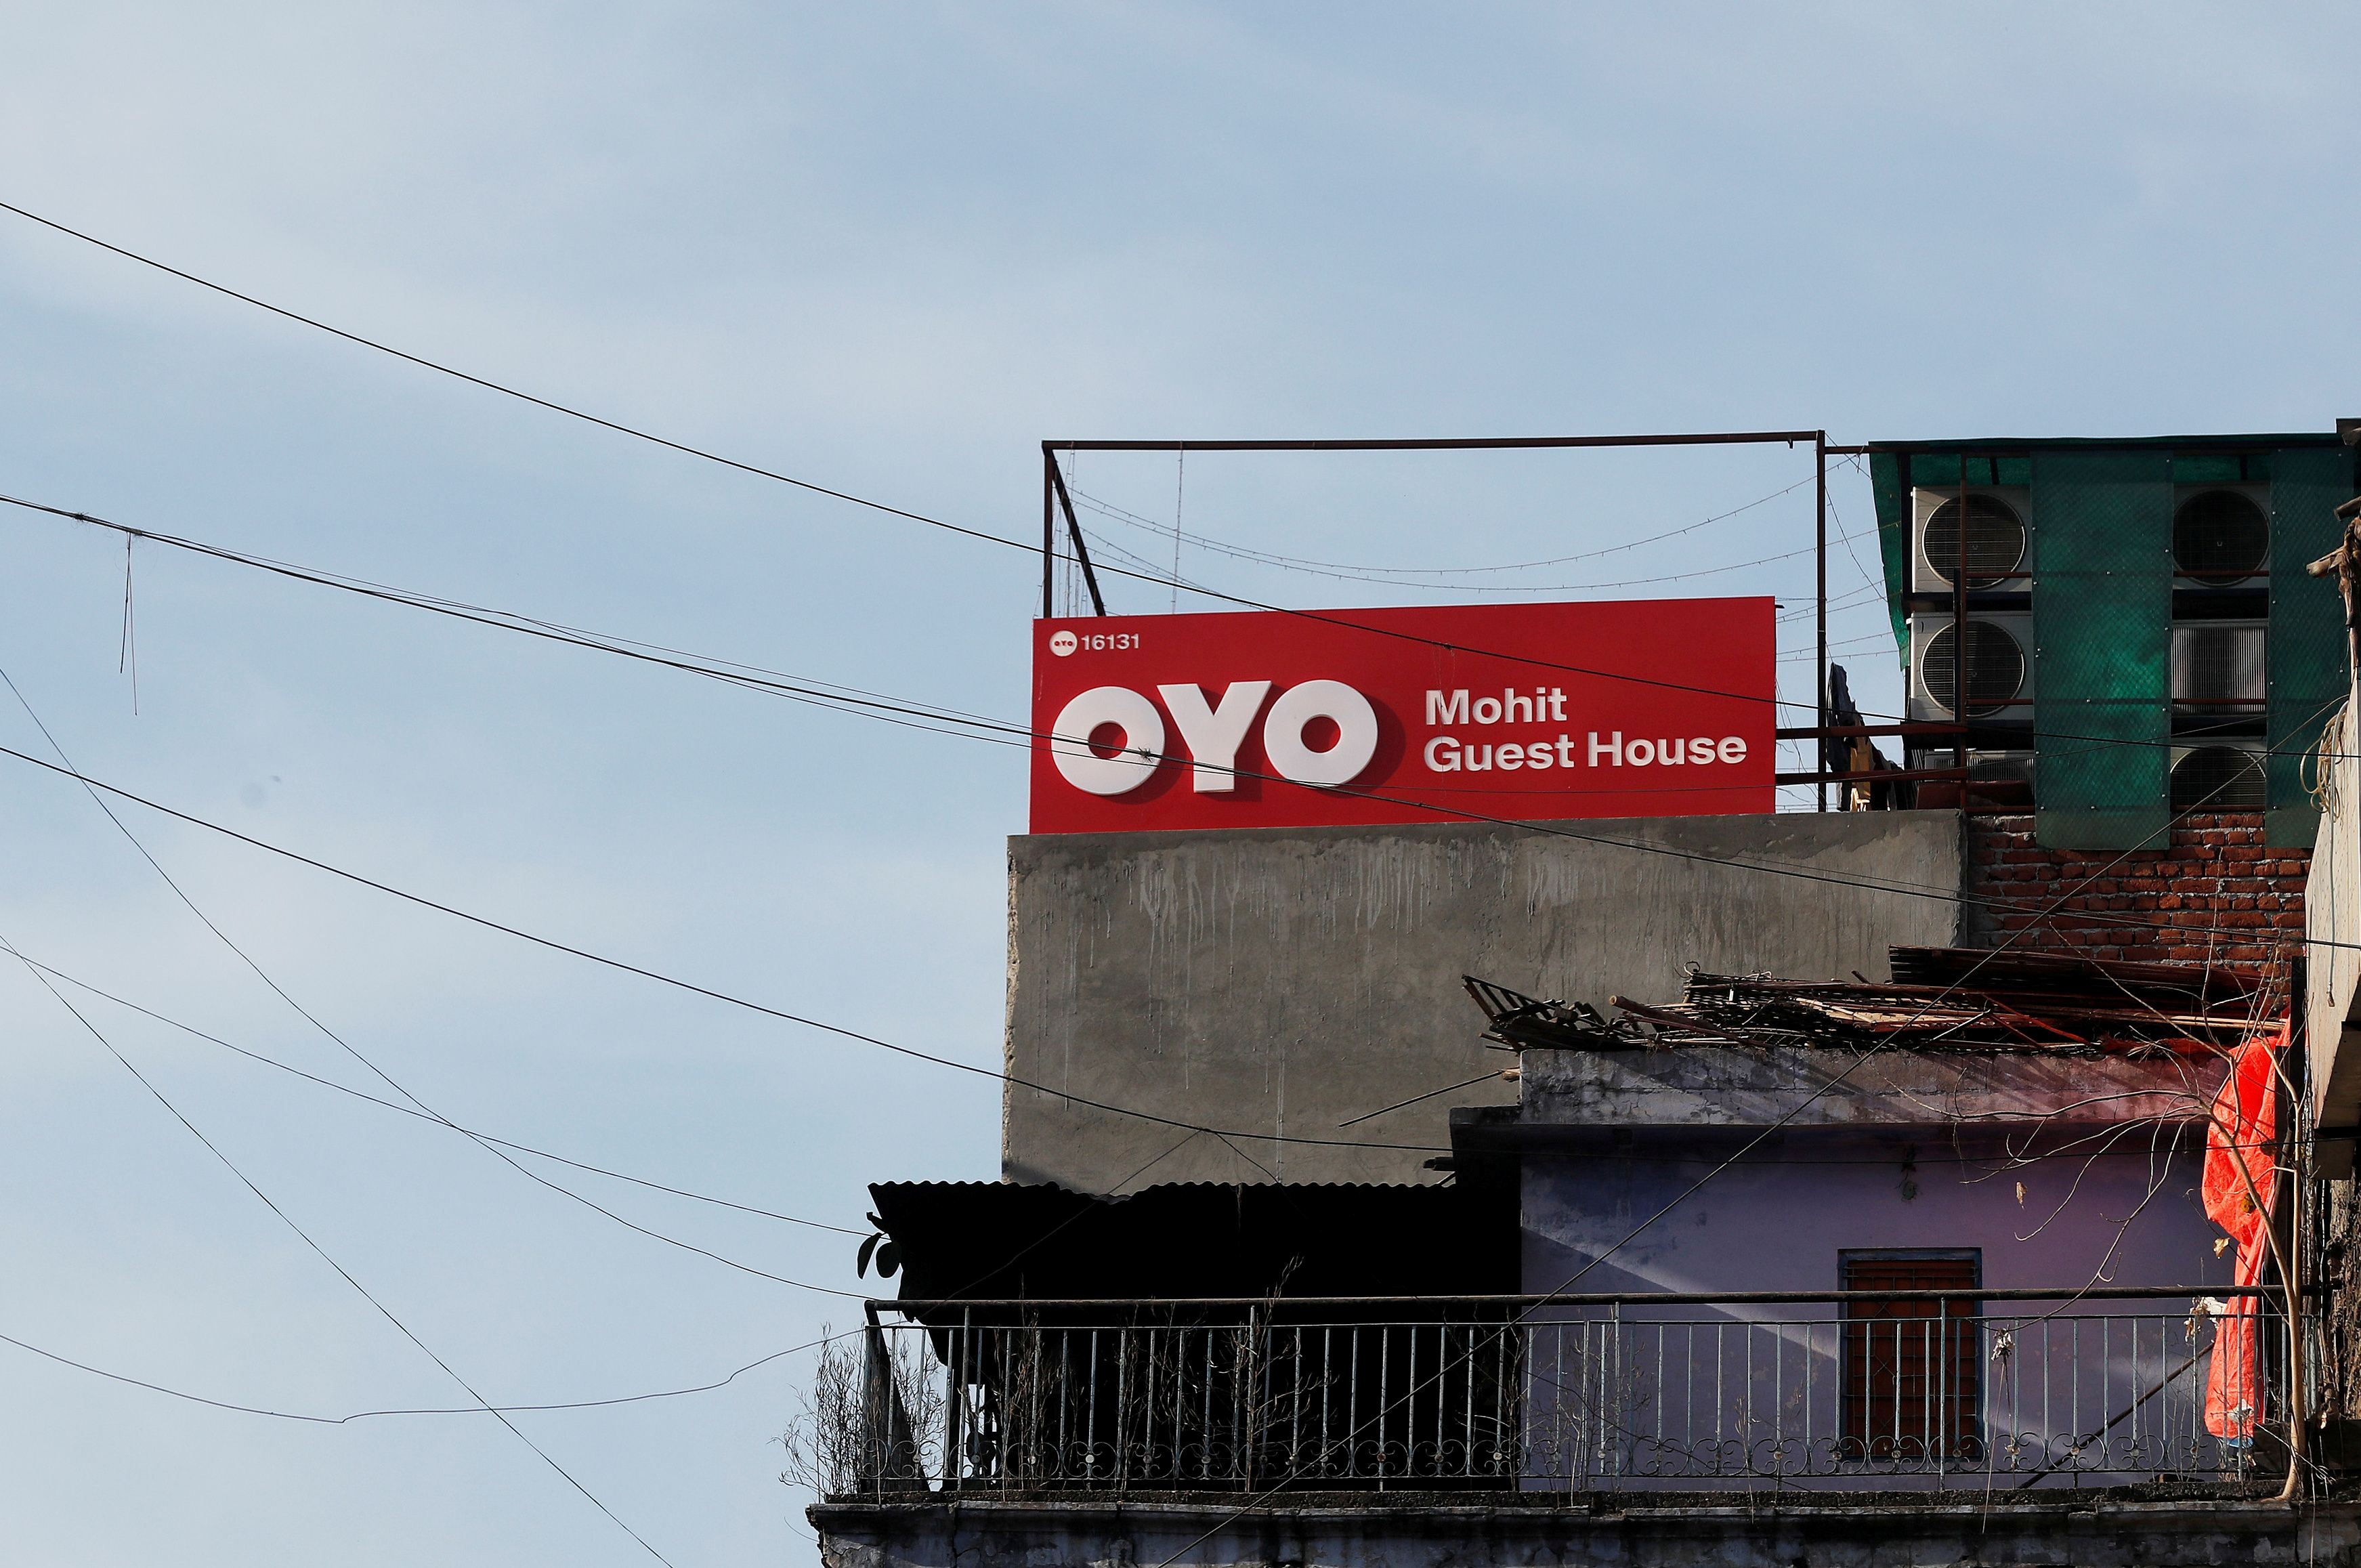 The logo of OYO, India's largest and fastest-growing hotel chain, is seen installed on a hotel building in New Delhi, India, April 3, 2019. REUTERS/Adnan Abidi/File Photo